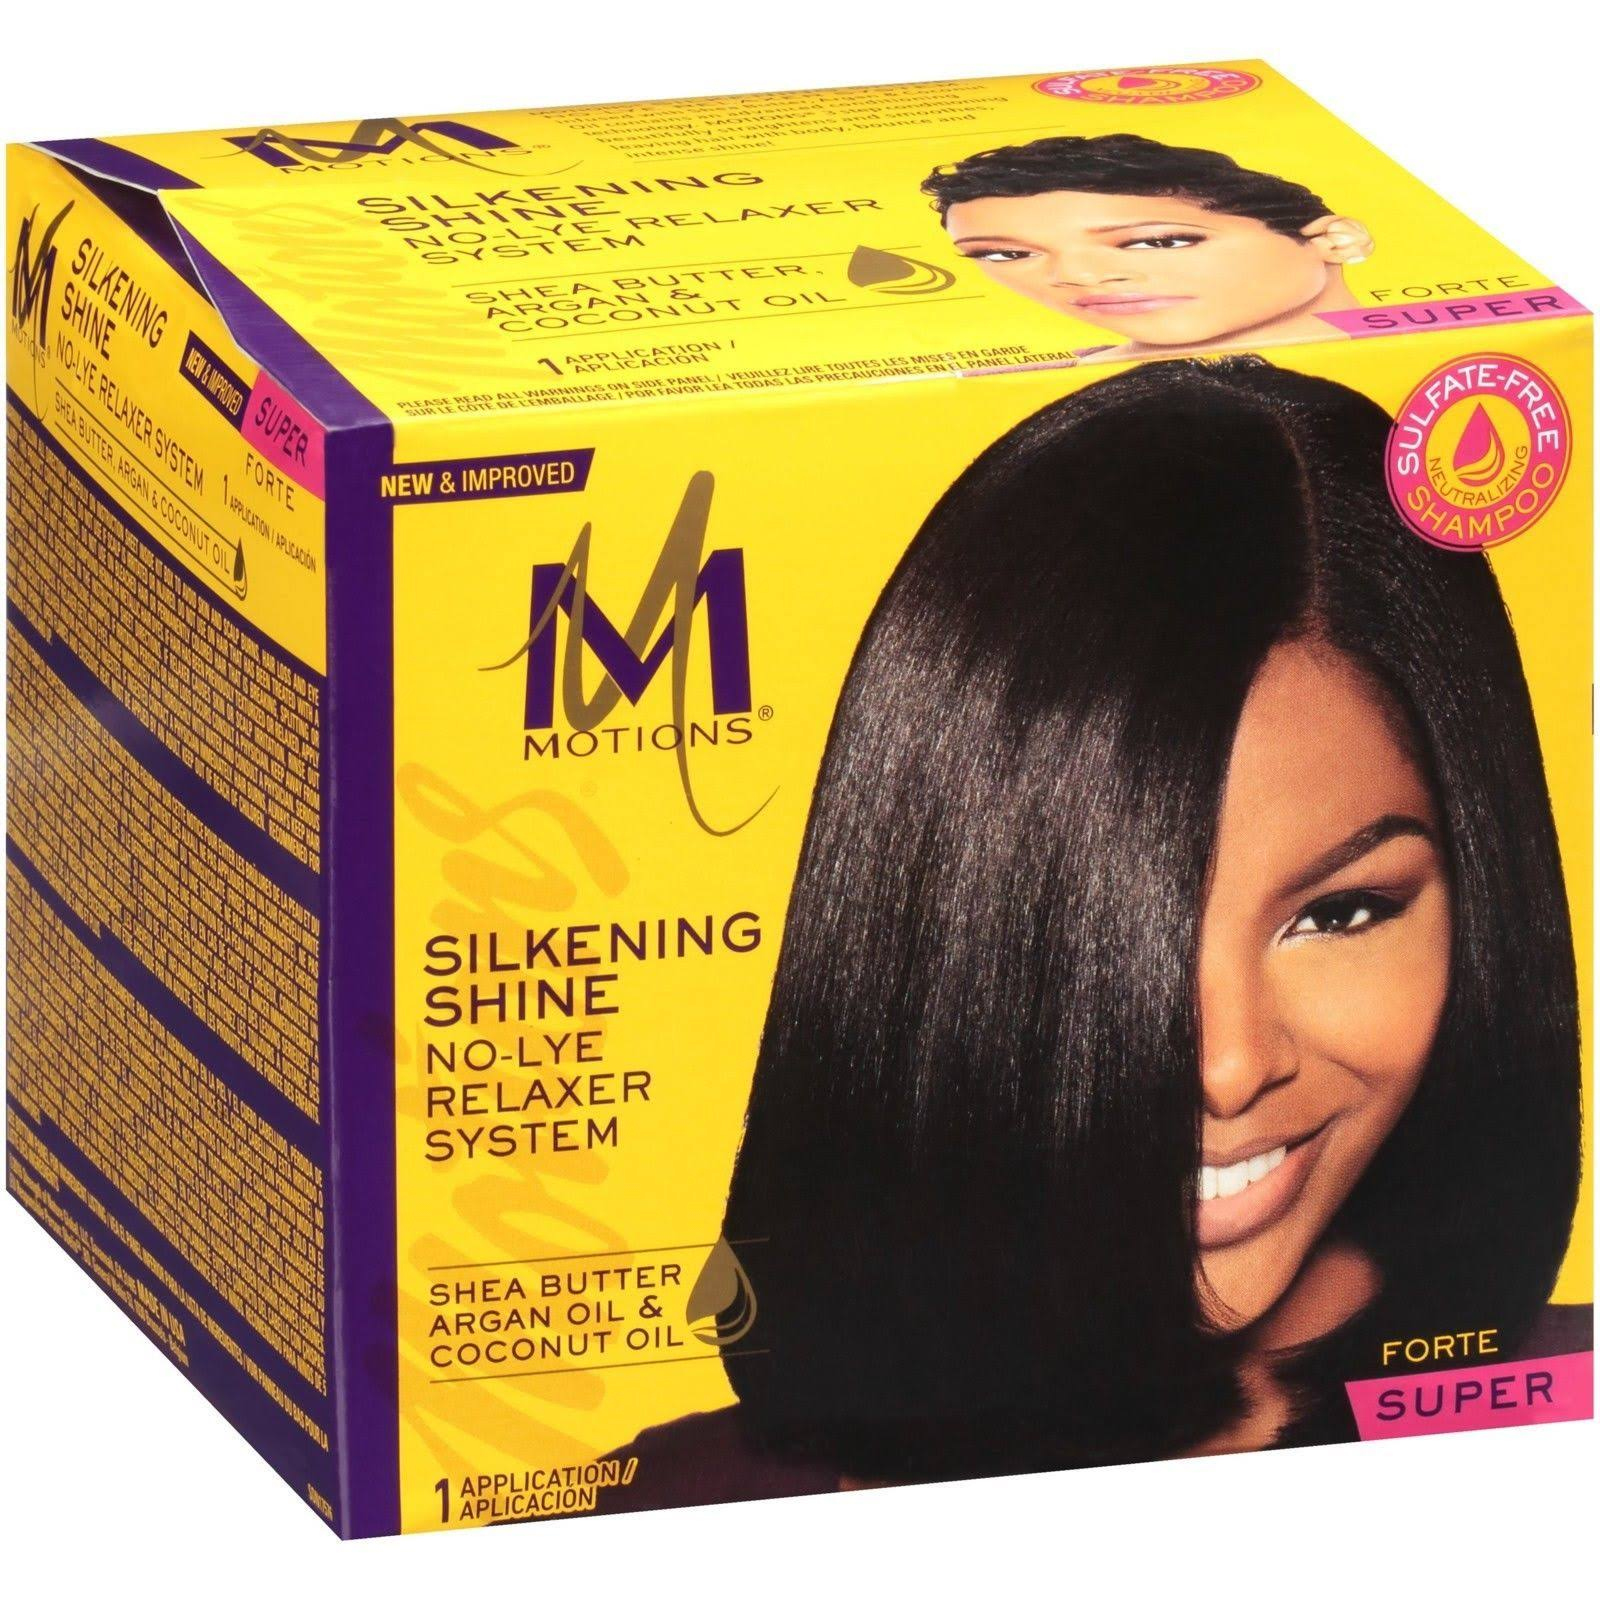 Motions Super Silkening Shine No-Lye Relaxer System Box